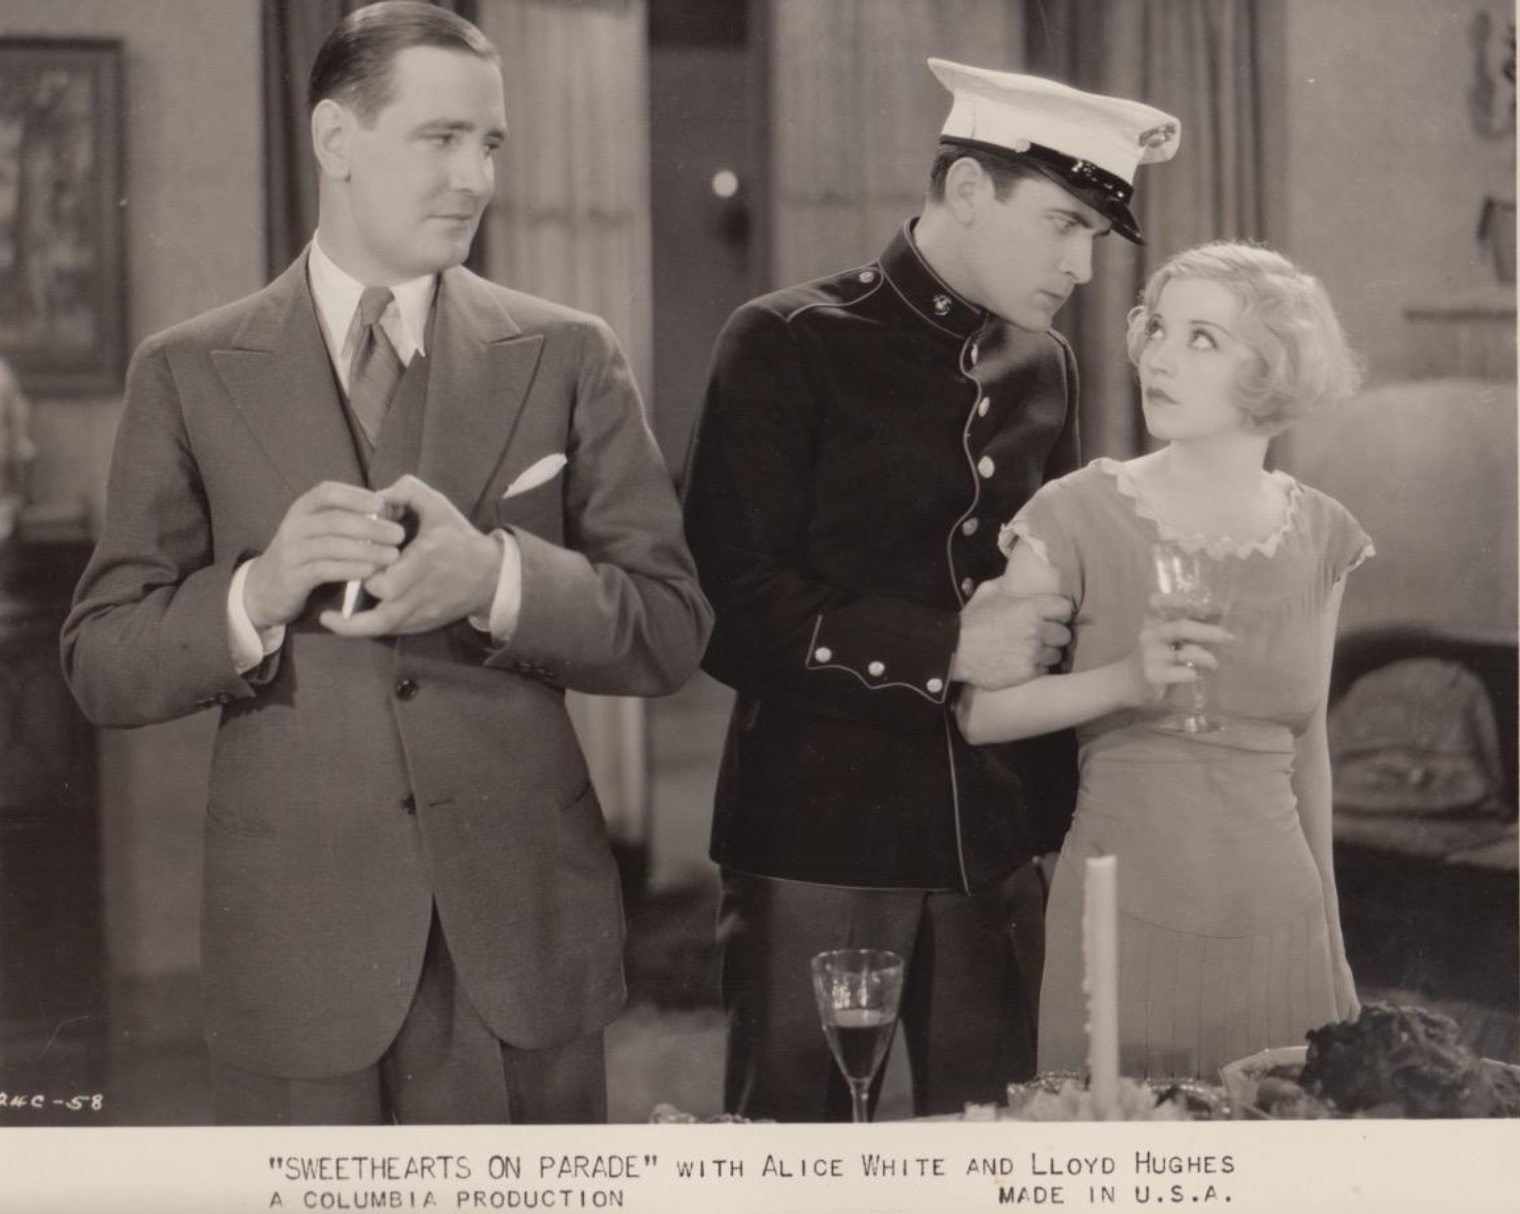 Lloyd Hughes, Kenneth Thomson, and Alice White in Sweethearts on Parade (1930)